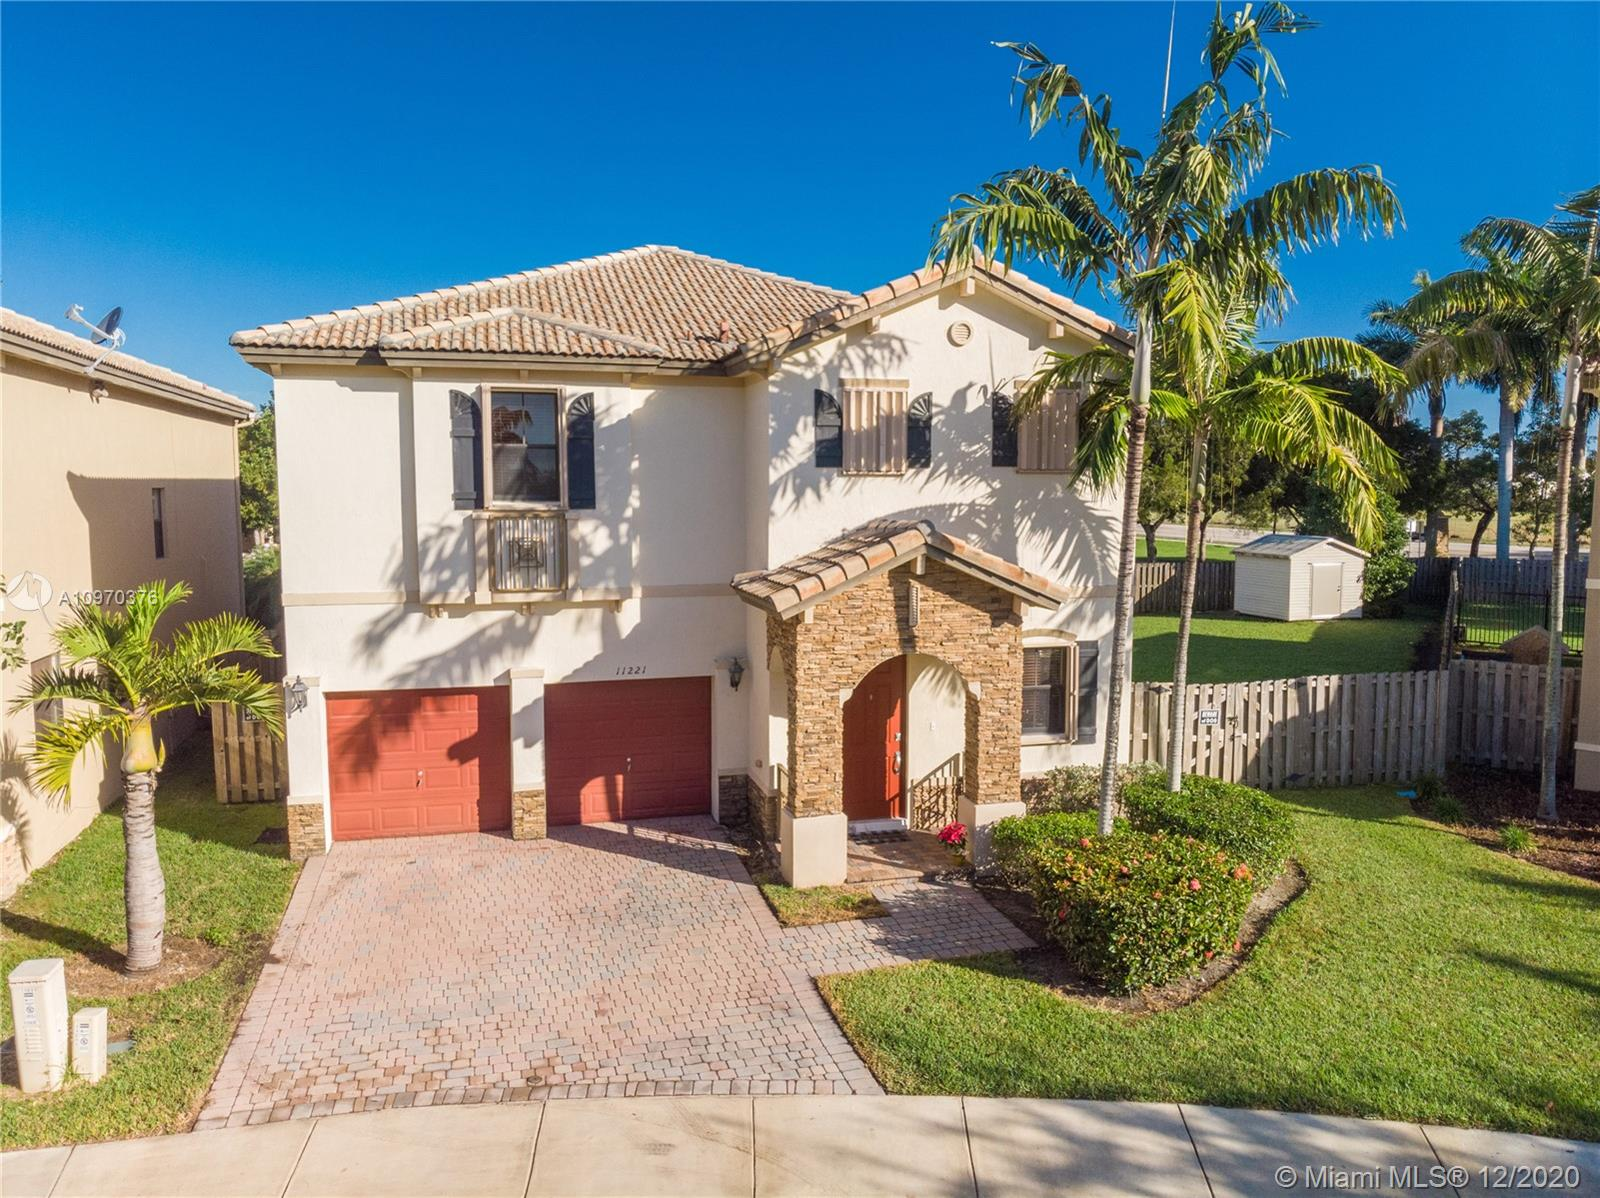 11221 SW 240th Ln Property Photo - Homestead, FL real estate listing